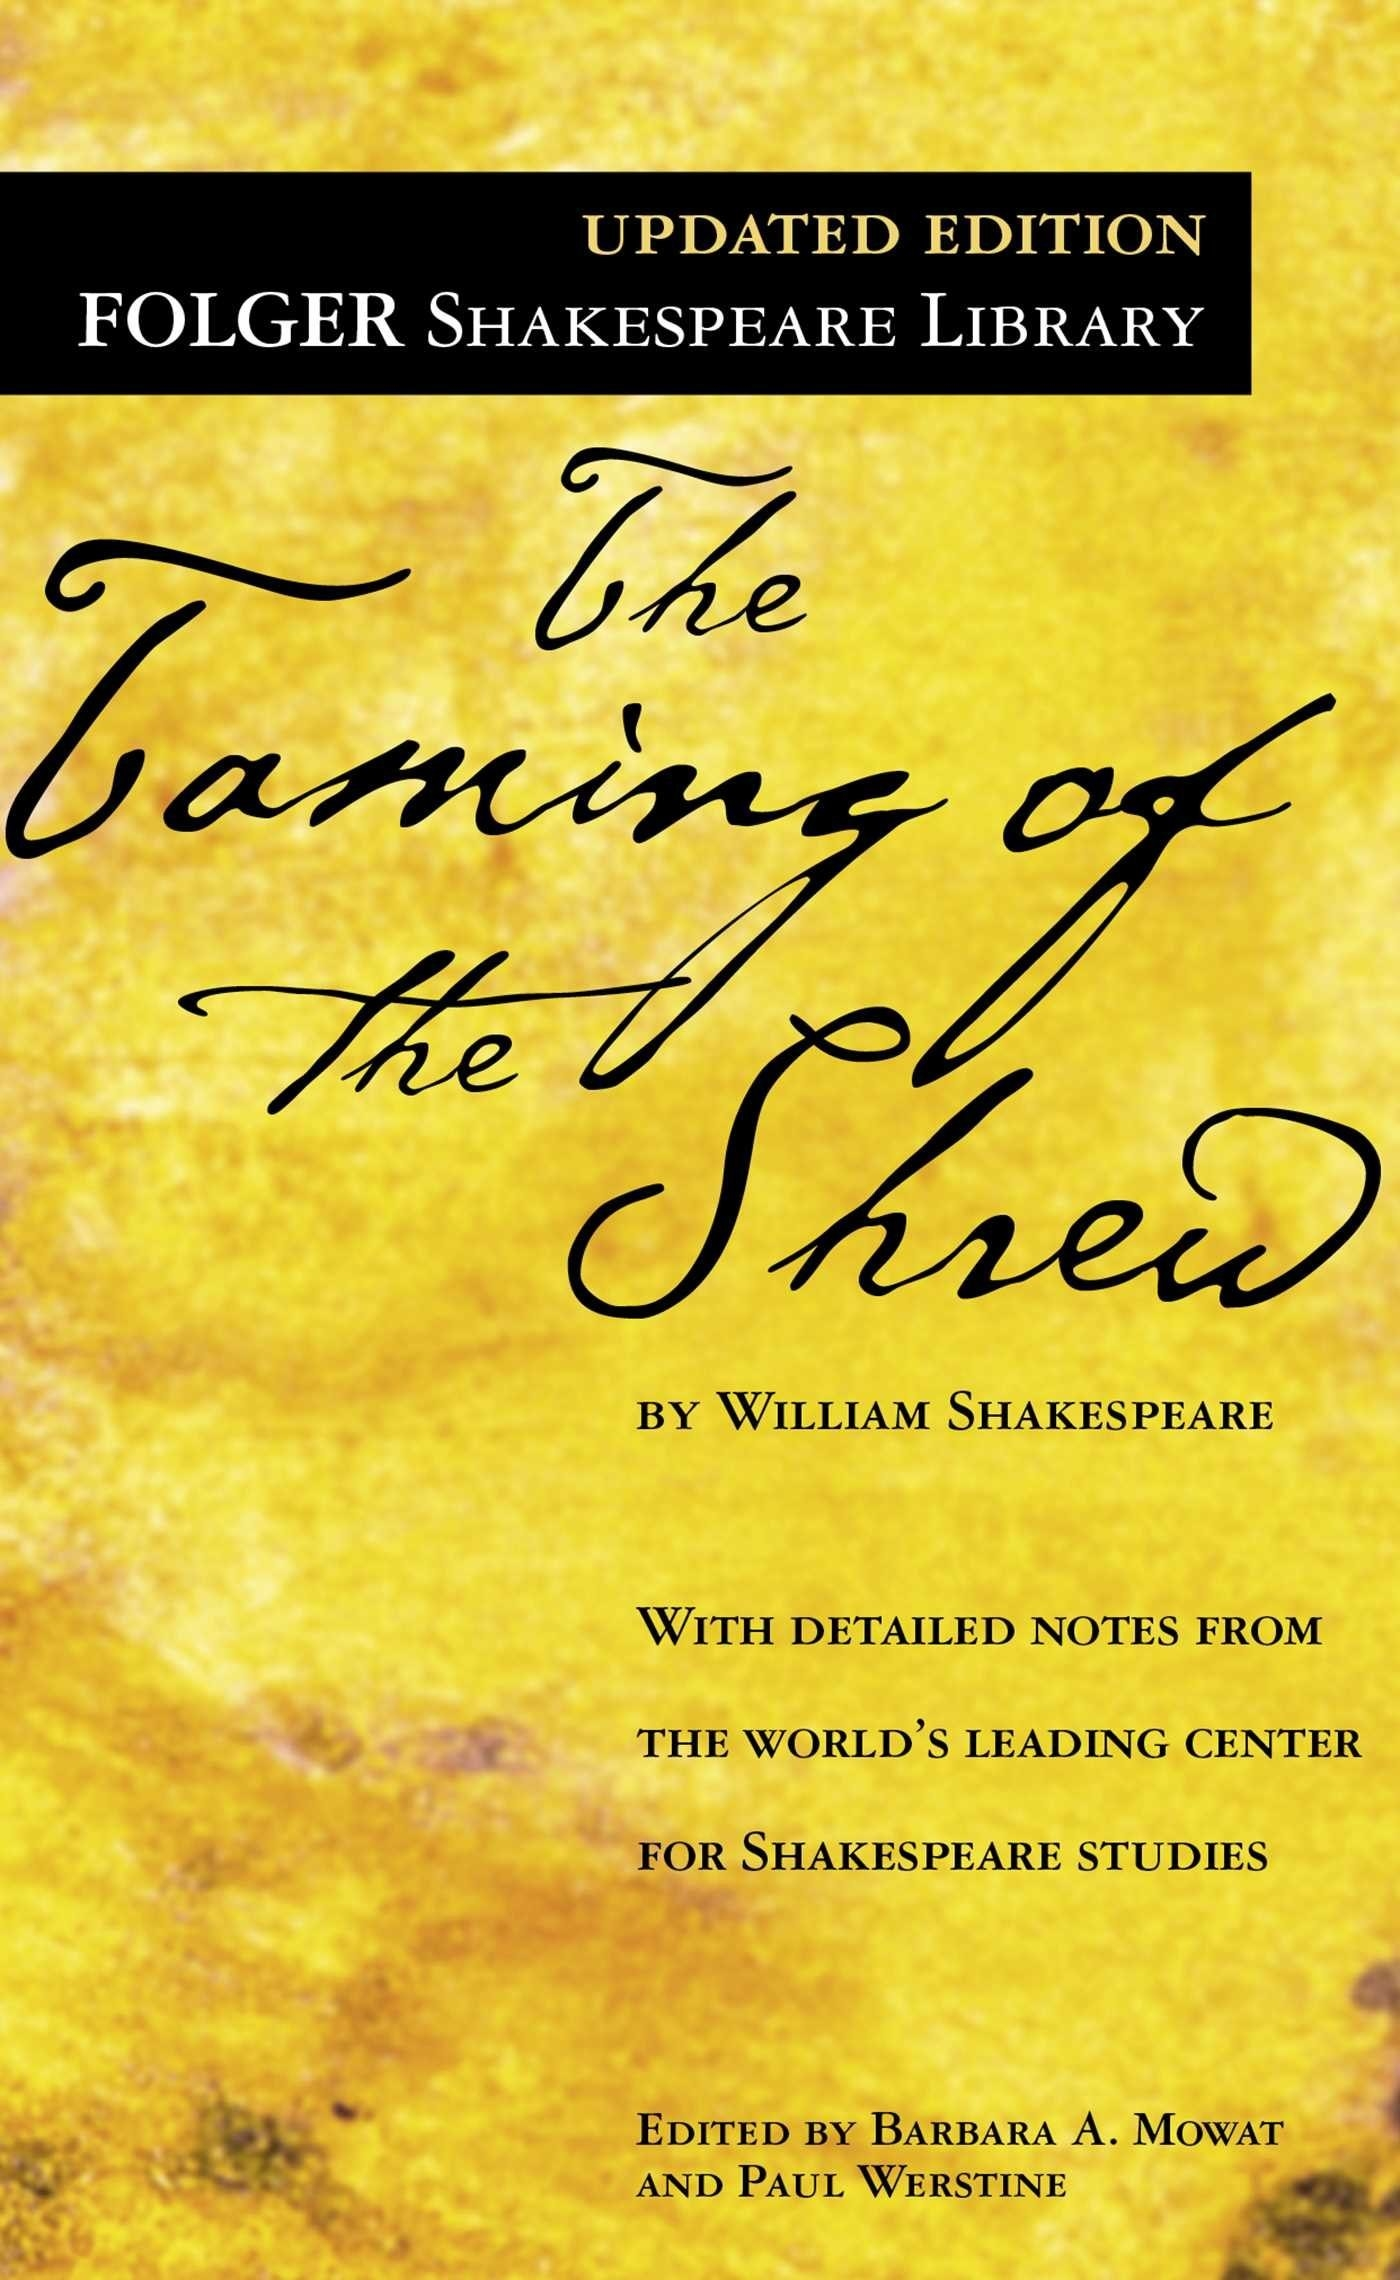 The cover of The Taming of the Shrew